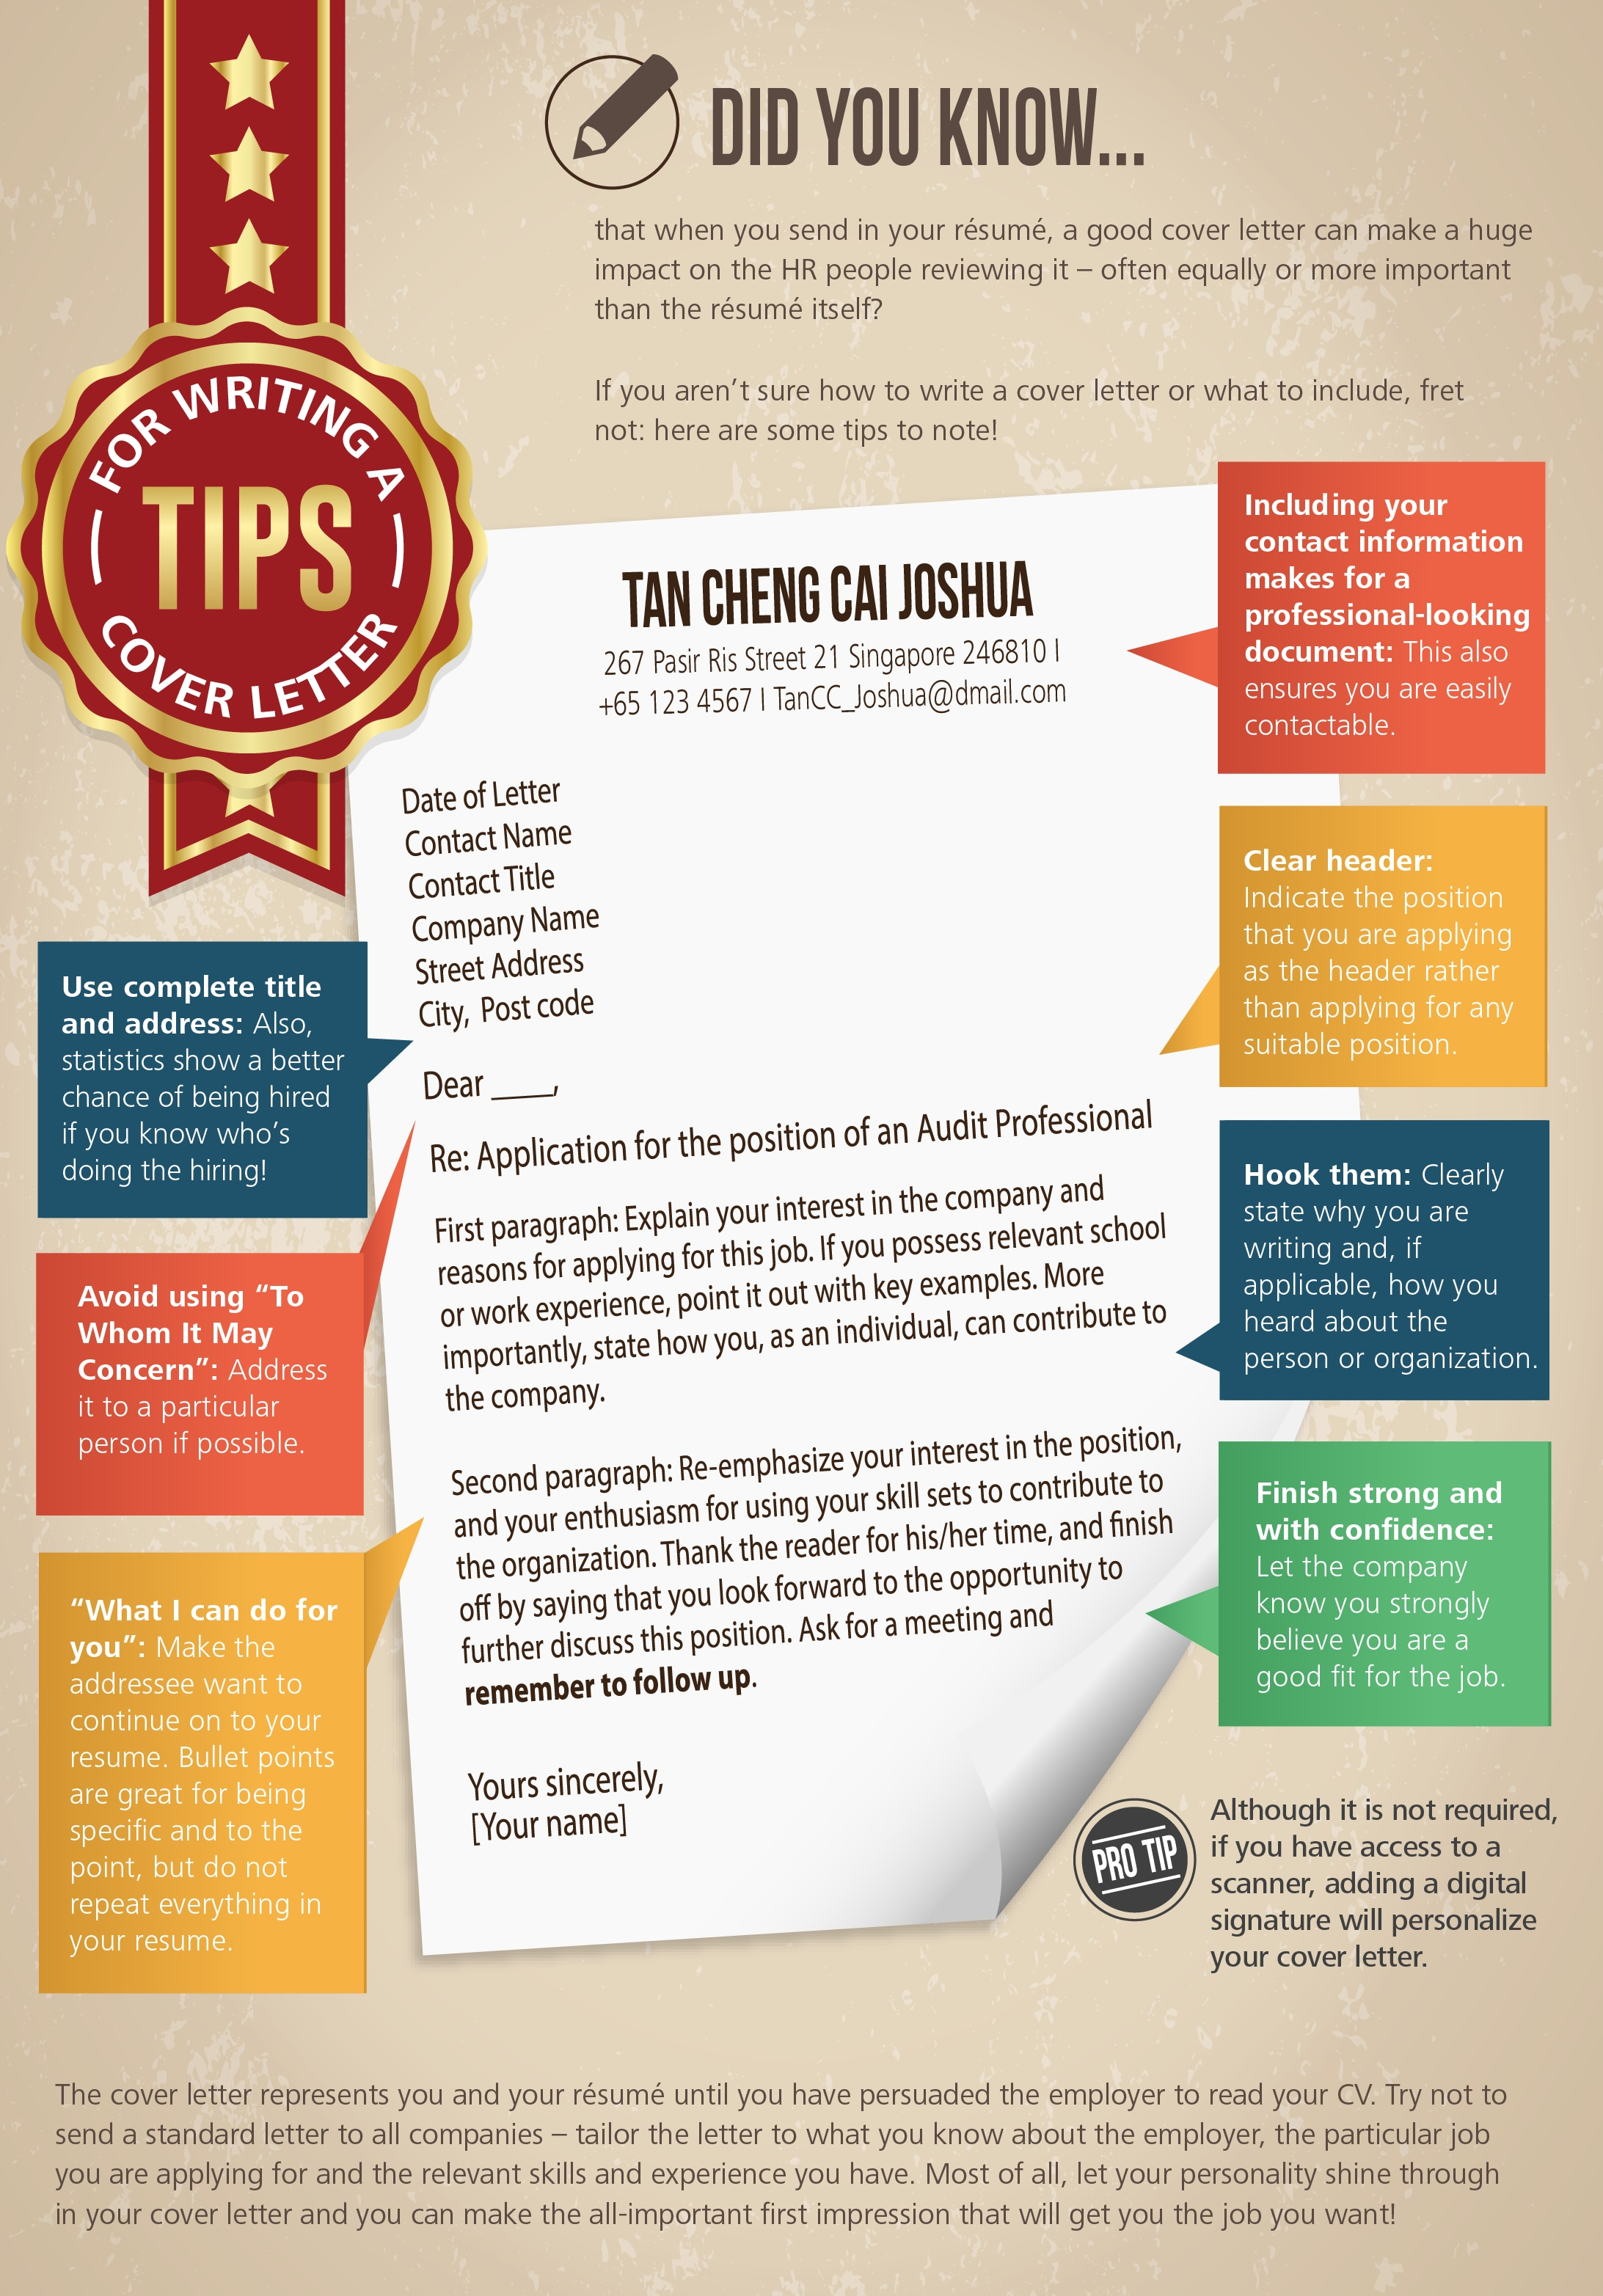 Tips for writing a cover letter | Deloitte Singapore | Careers ...